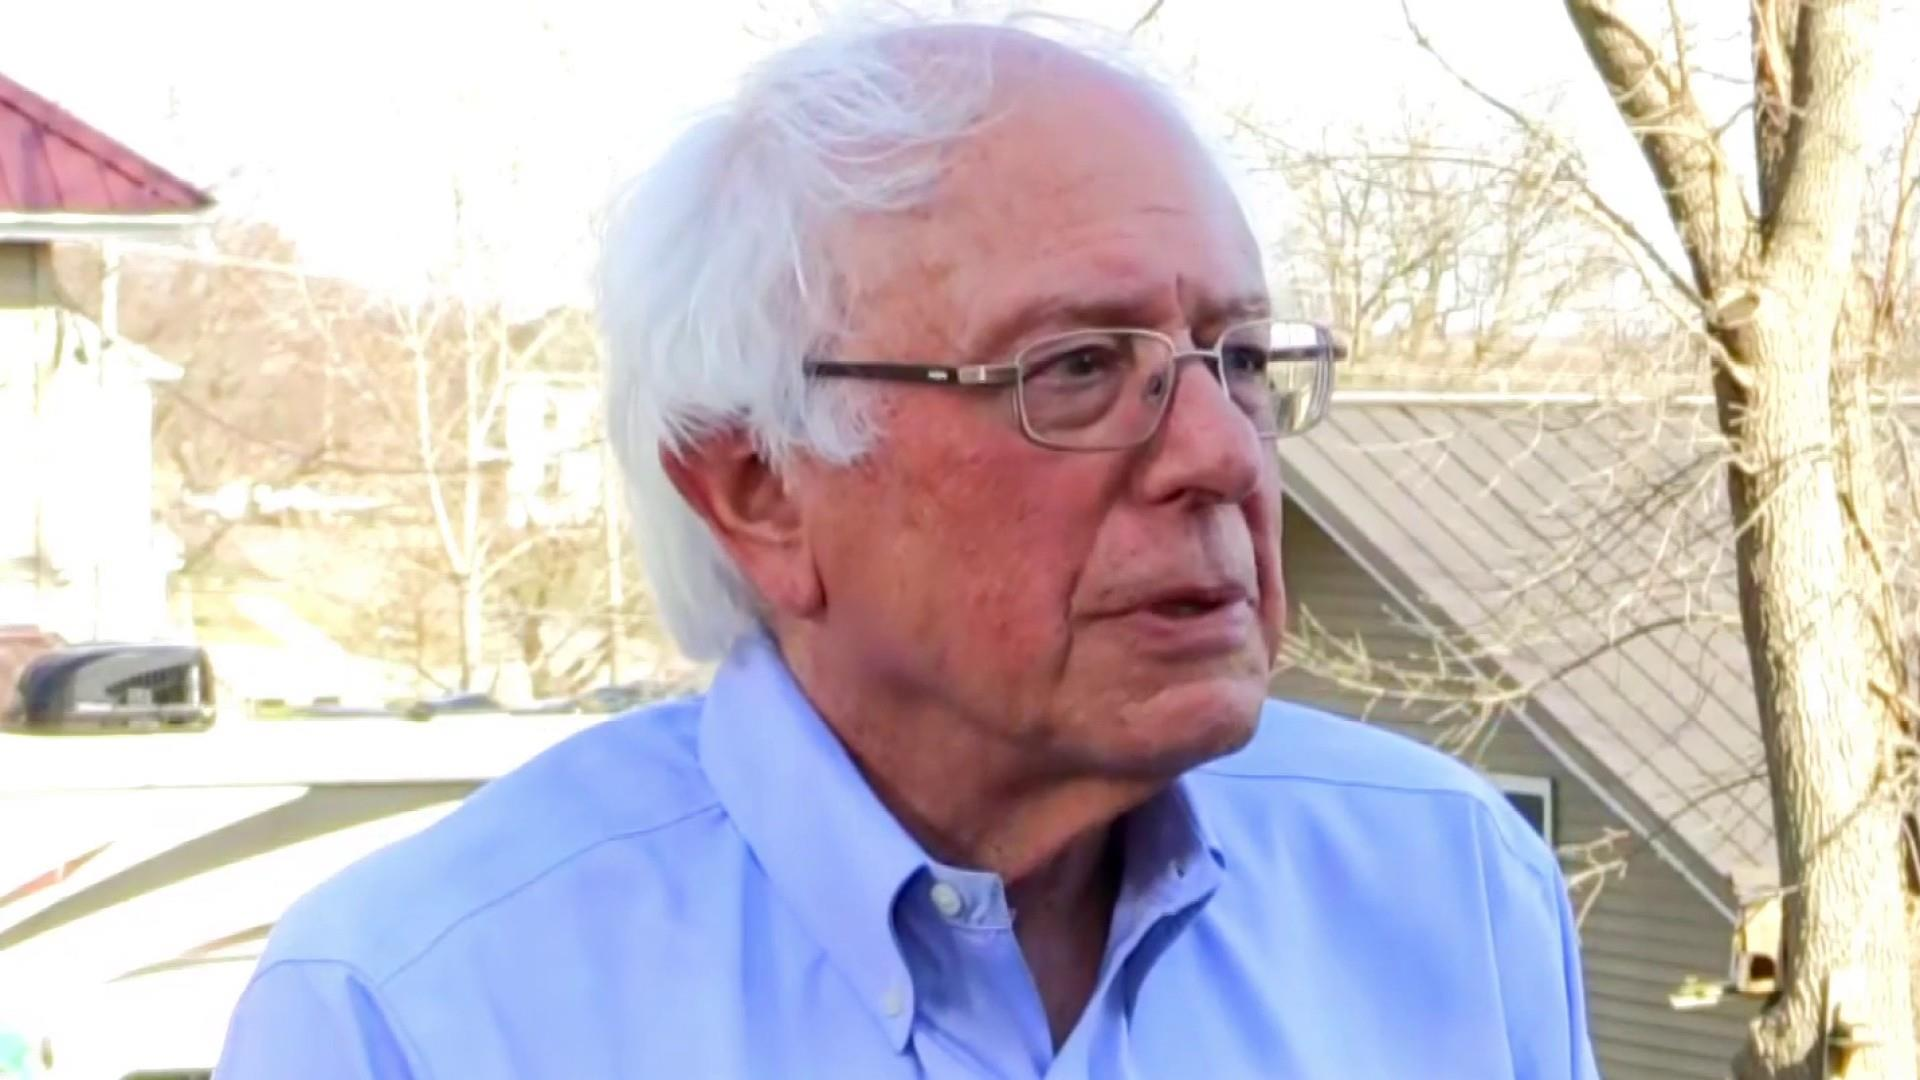 Could Bernie Sanders' tax returns drive his supporters away?